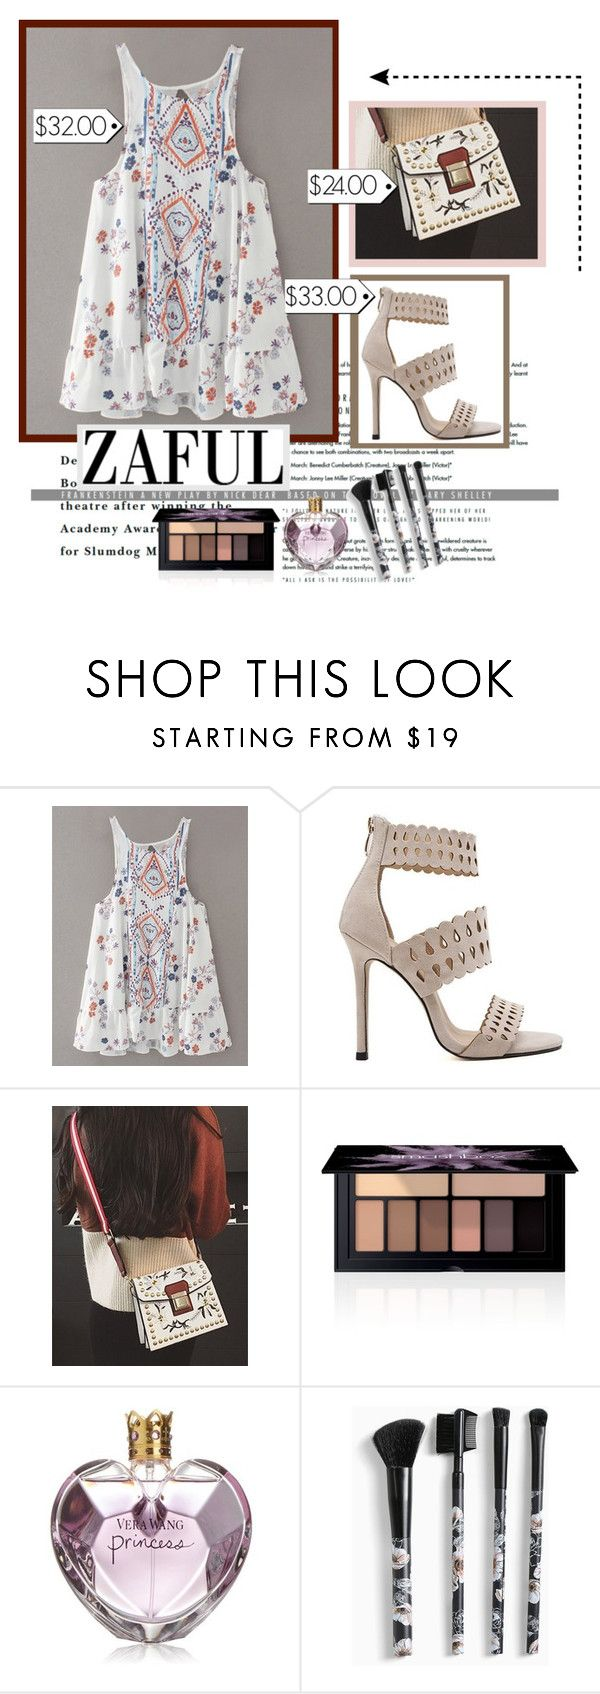 """""""Cute dress"""" by merimarahmanovic ❤ liked on Polyvore featuring Smashbox, Vera Wang, Torrid and vintage"""